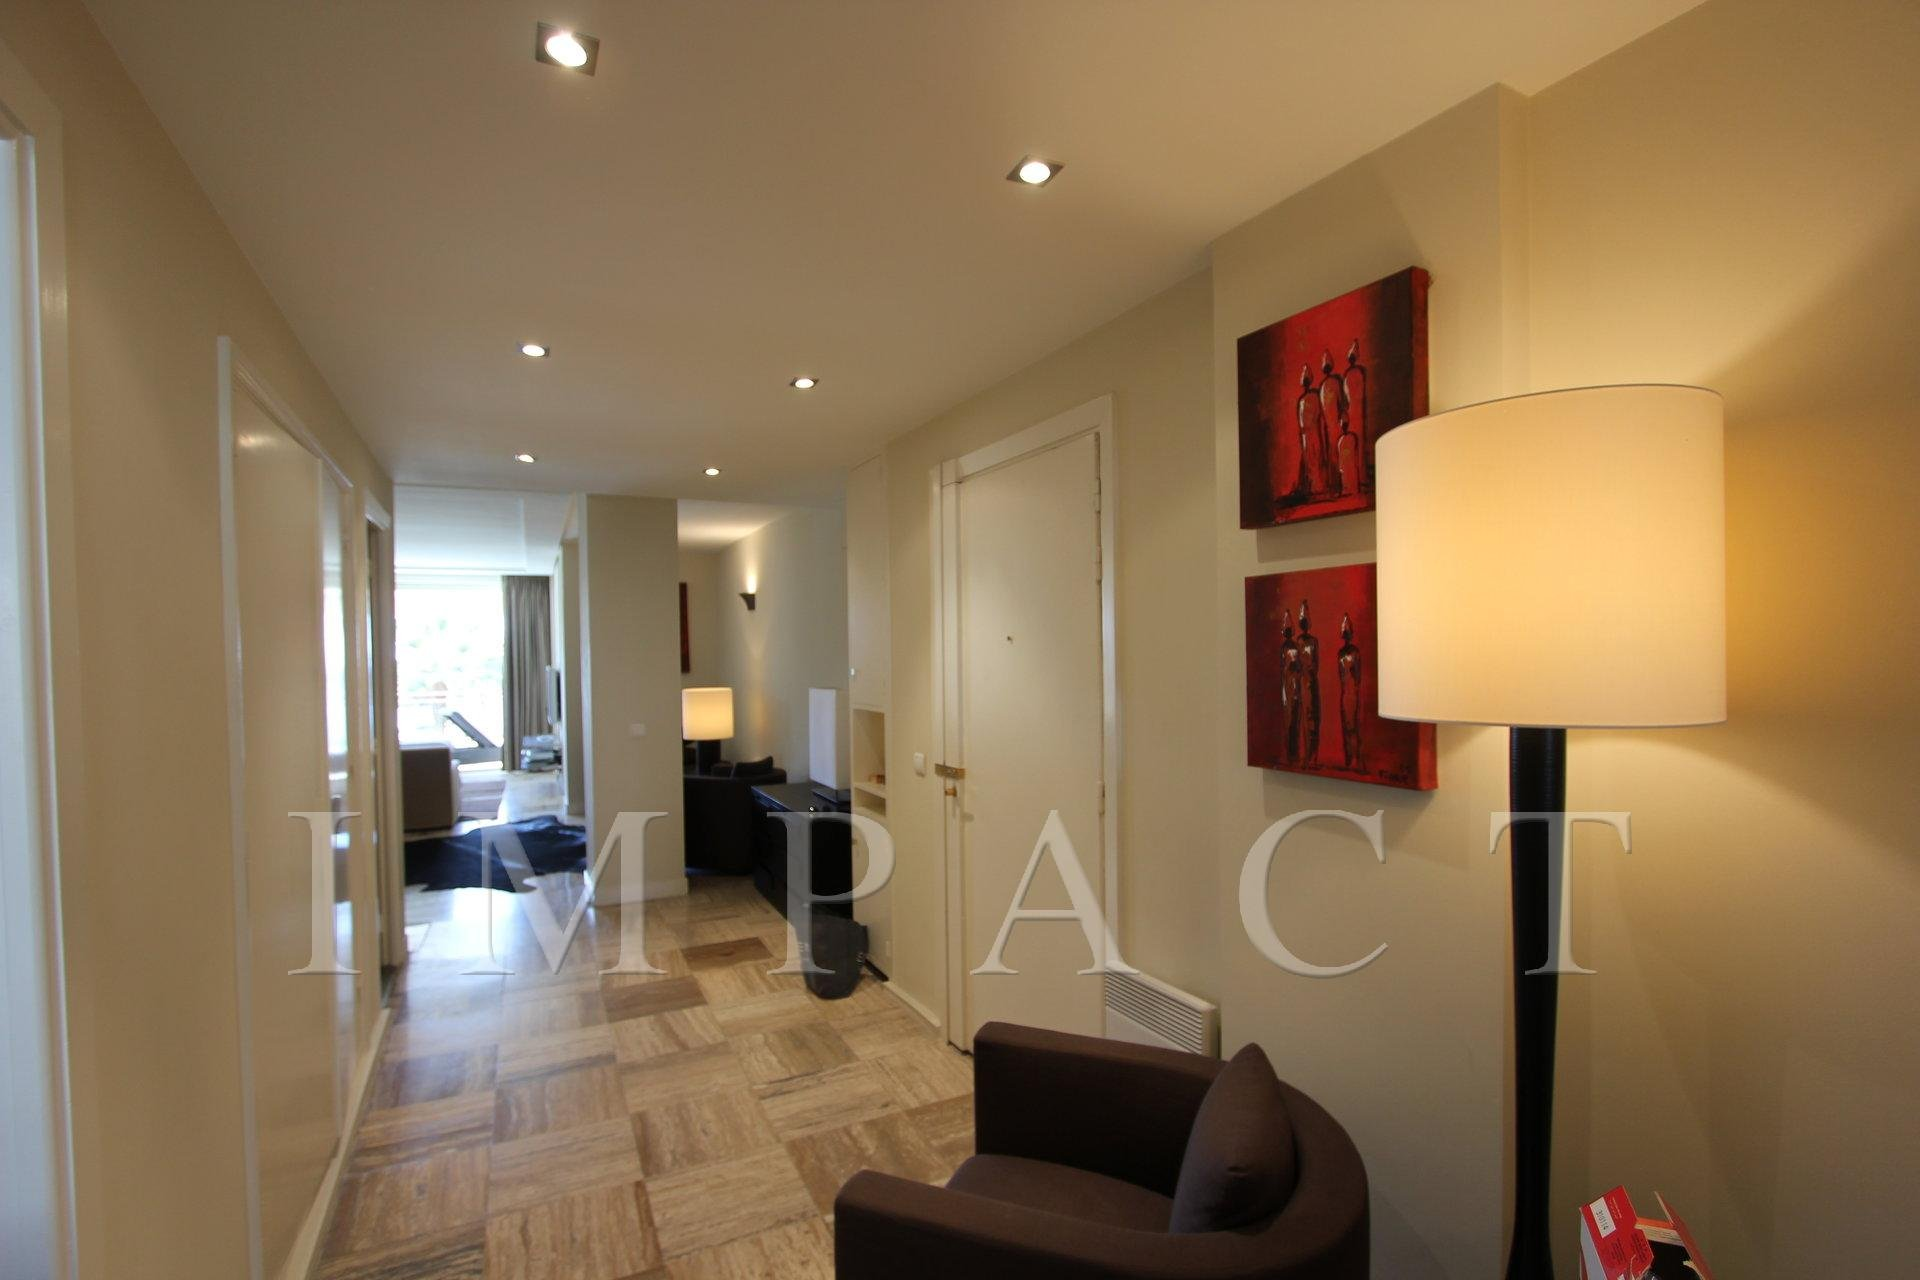 Apartment to rent in the Grand Hotel, Cannes